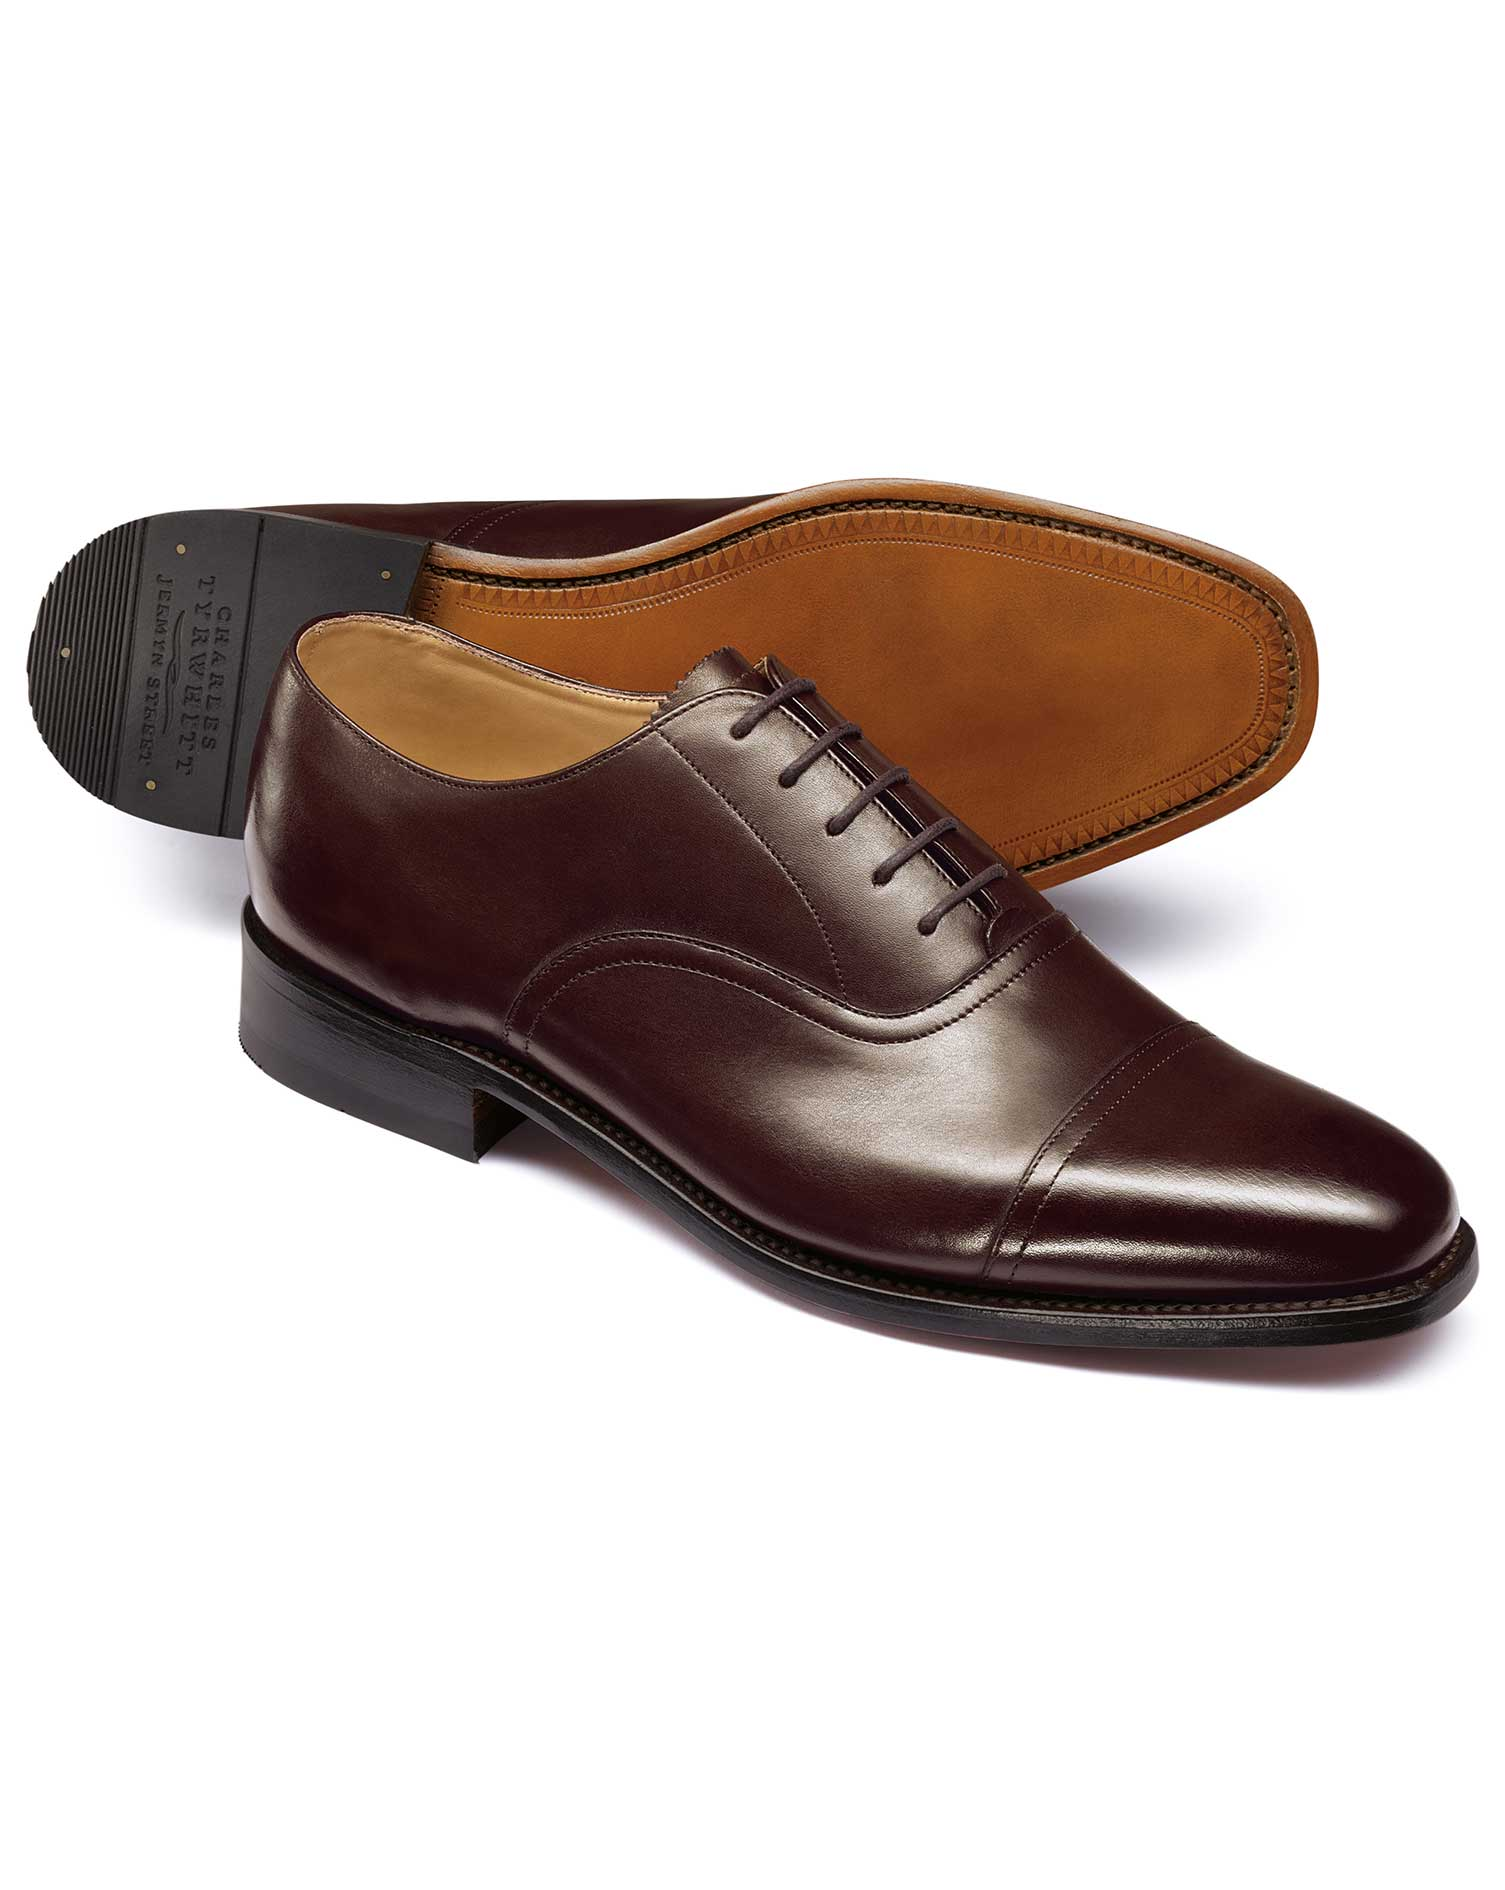 Chocolate Goodyear Welted Oxford Shoe Size 10.5 W by Charles Tyrwhitt